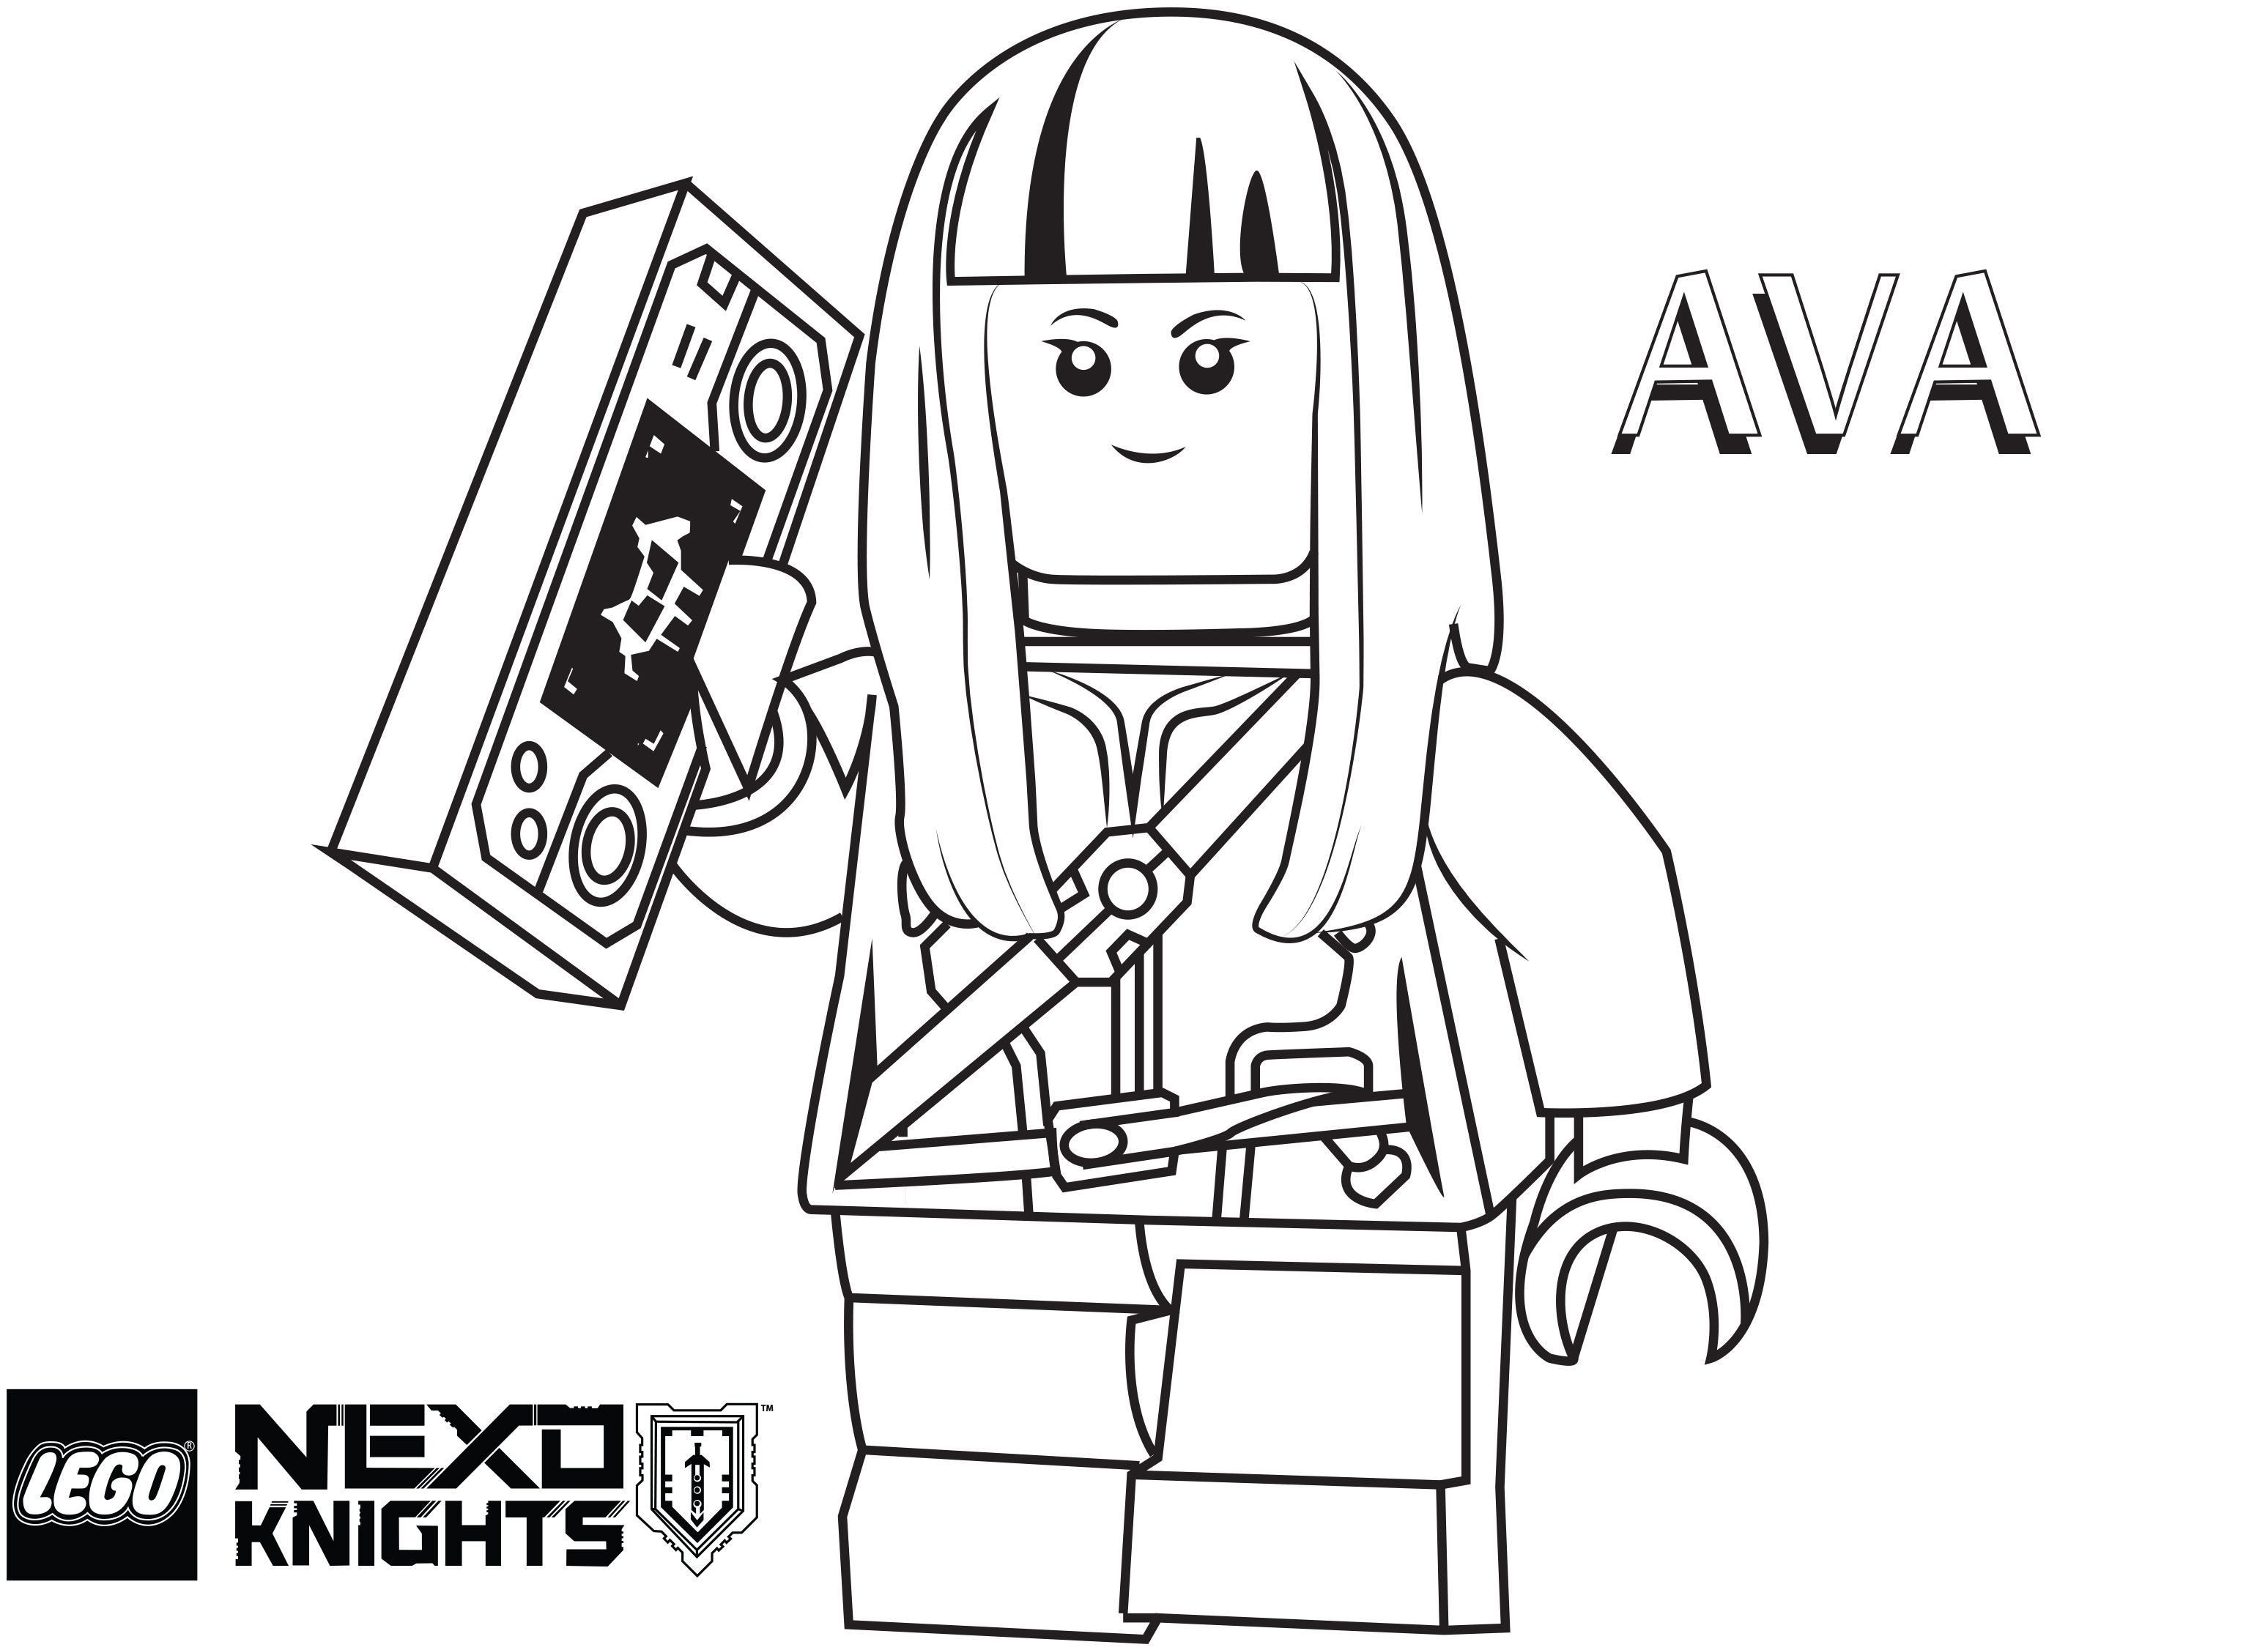 Lego Nexo Knights Coloring Pages Coloring Pages - Coloring ...